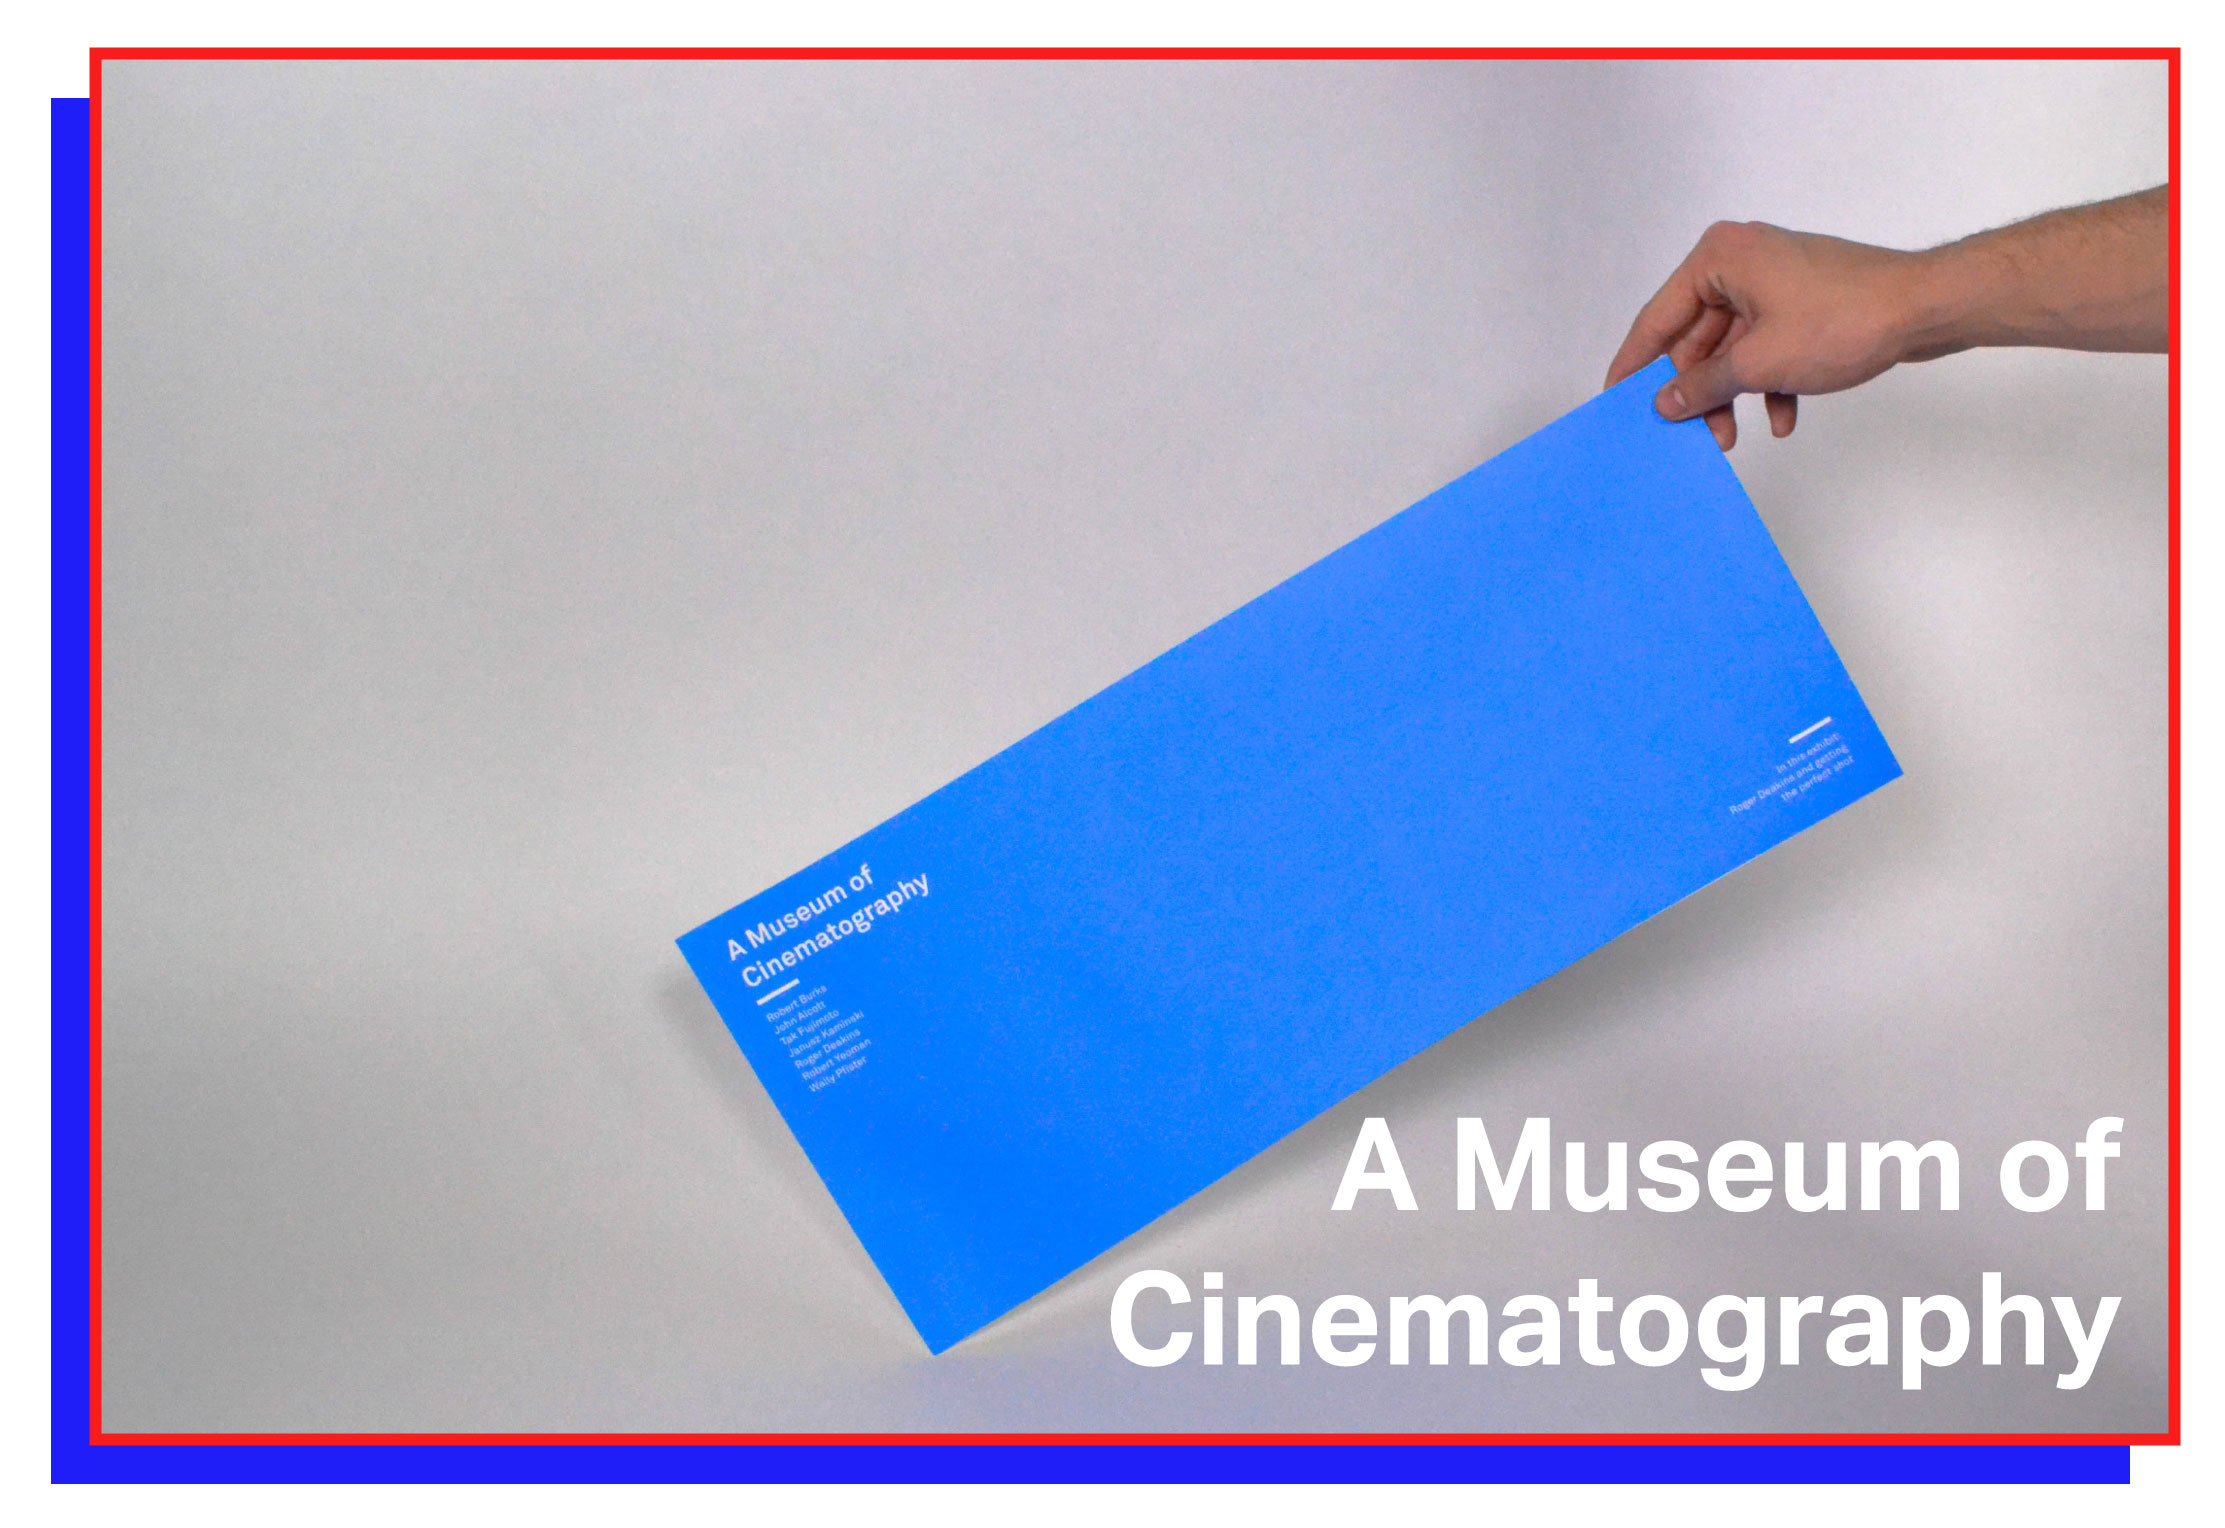 A Museum of Cinematography